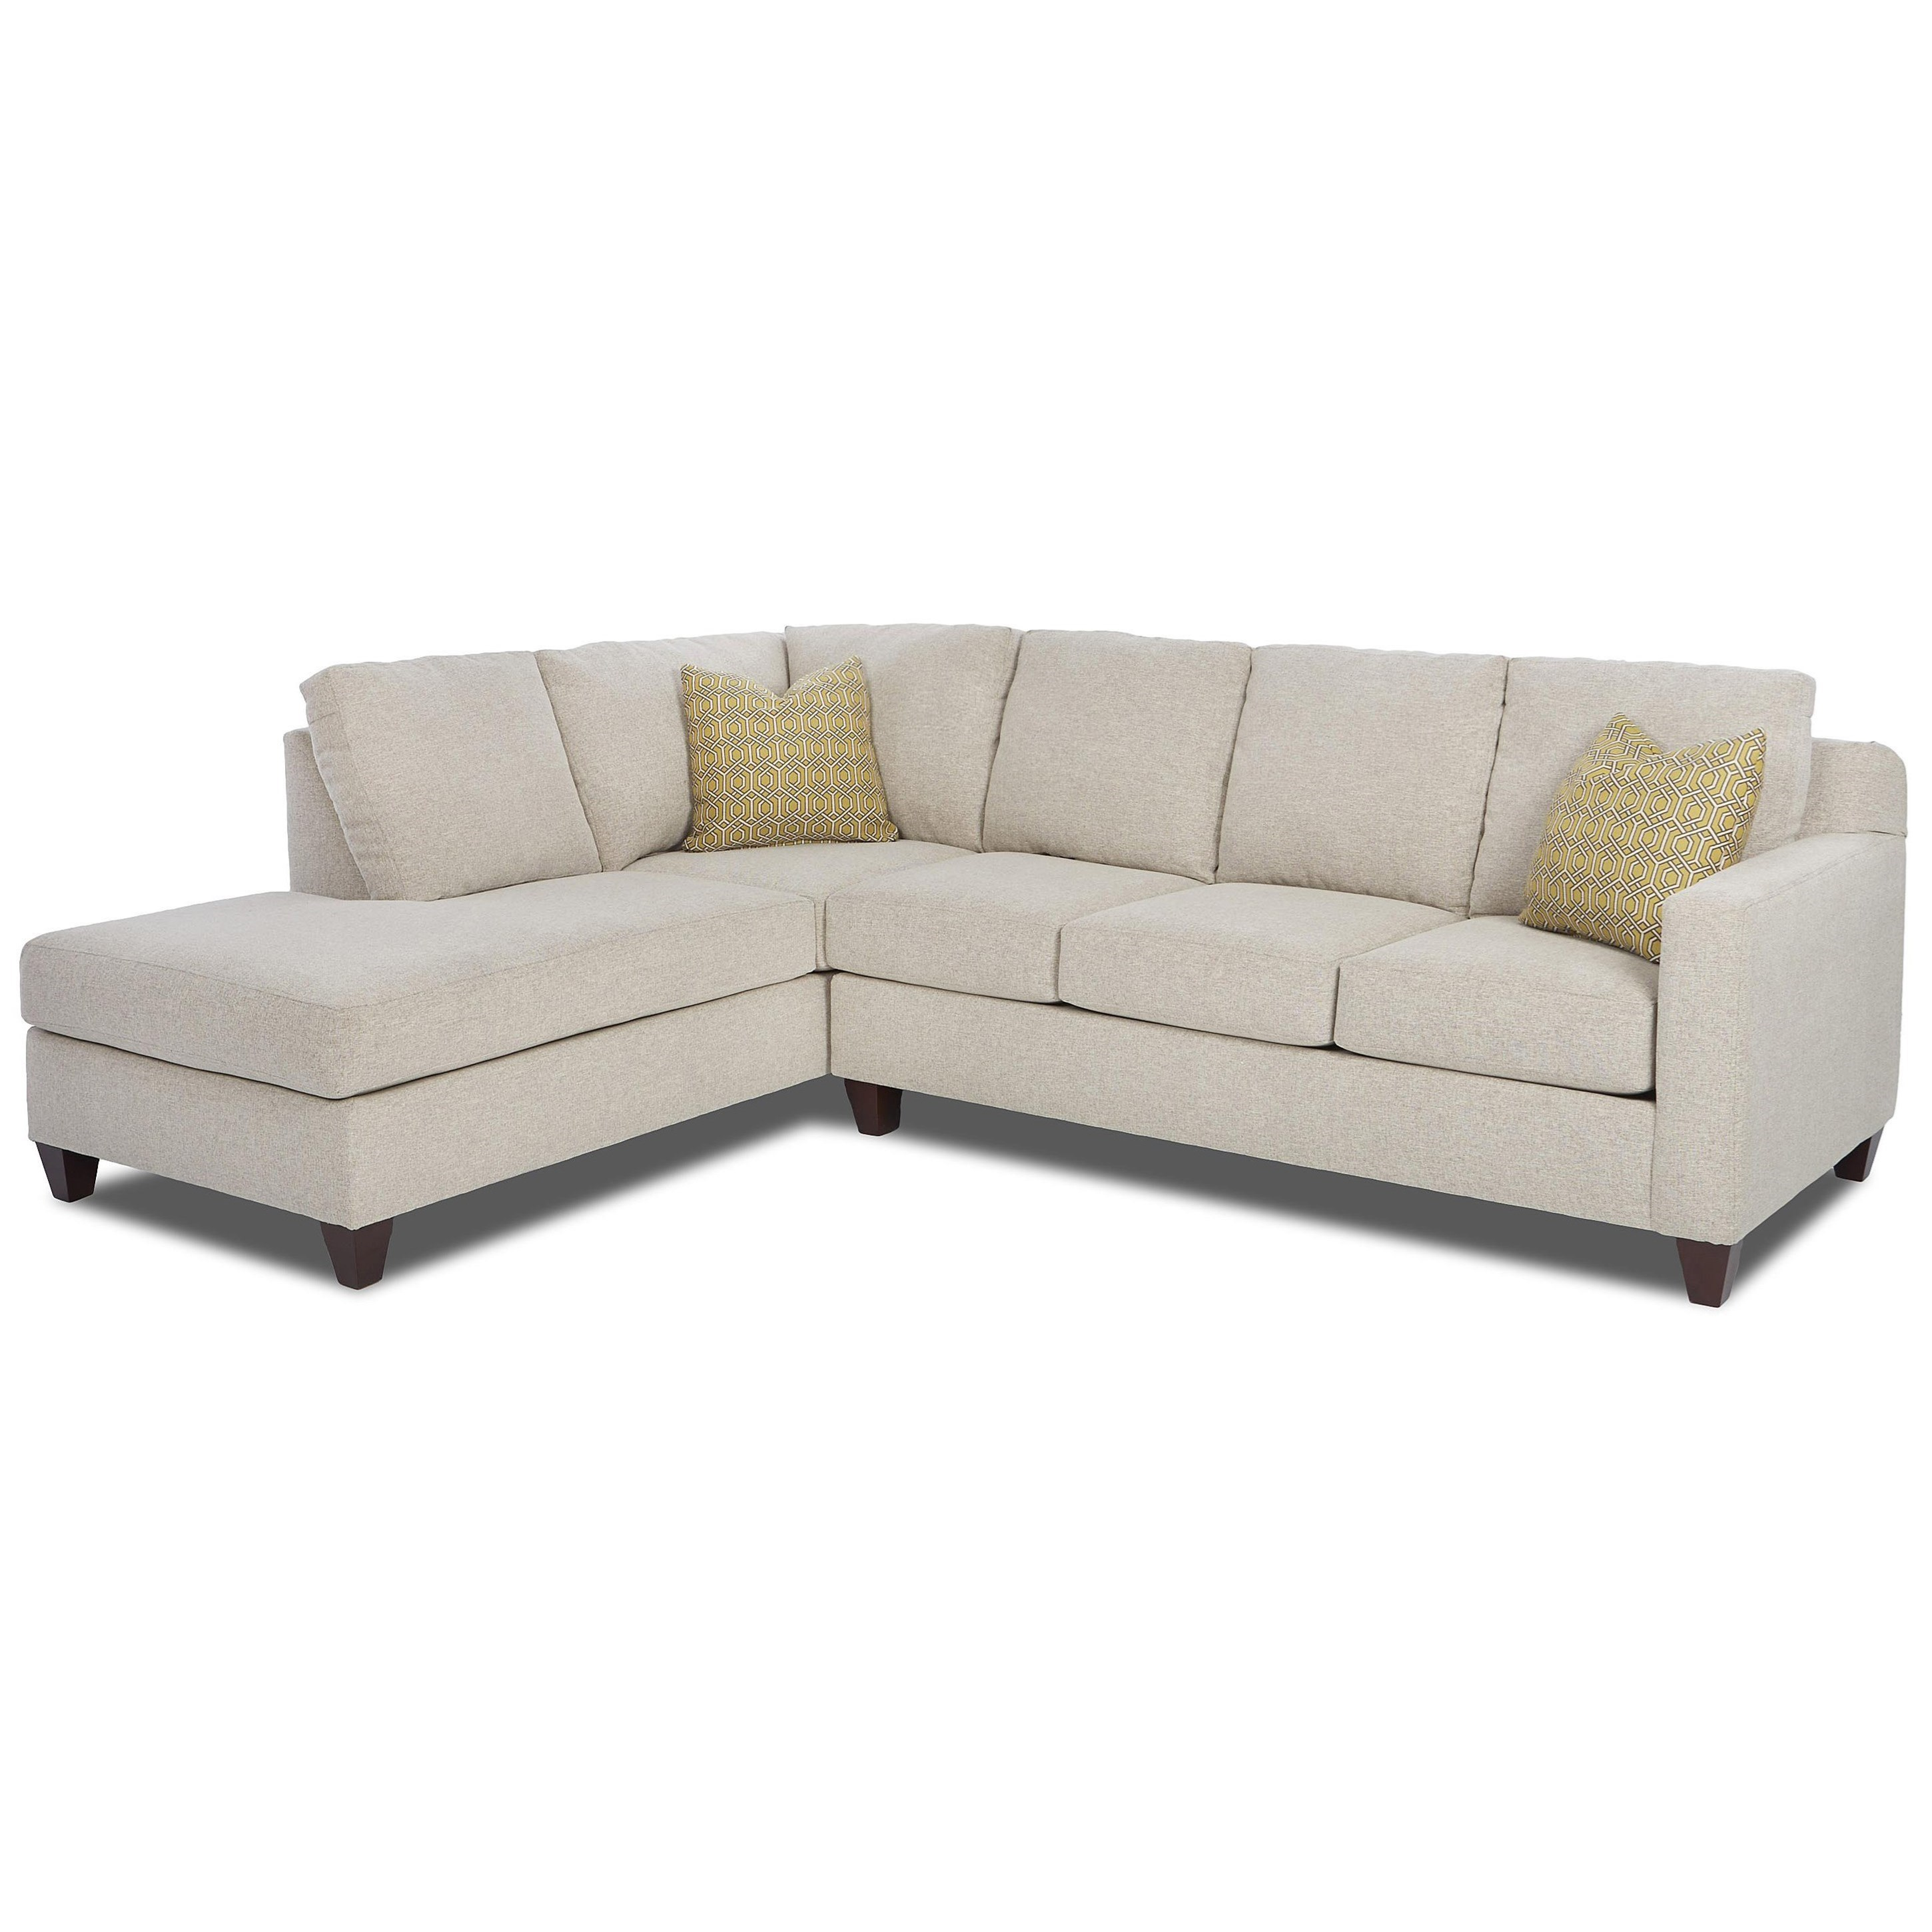 Klaussner bosco contemporary 2 piece sectional with left for One arm sofa chaise